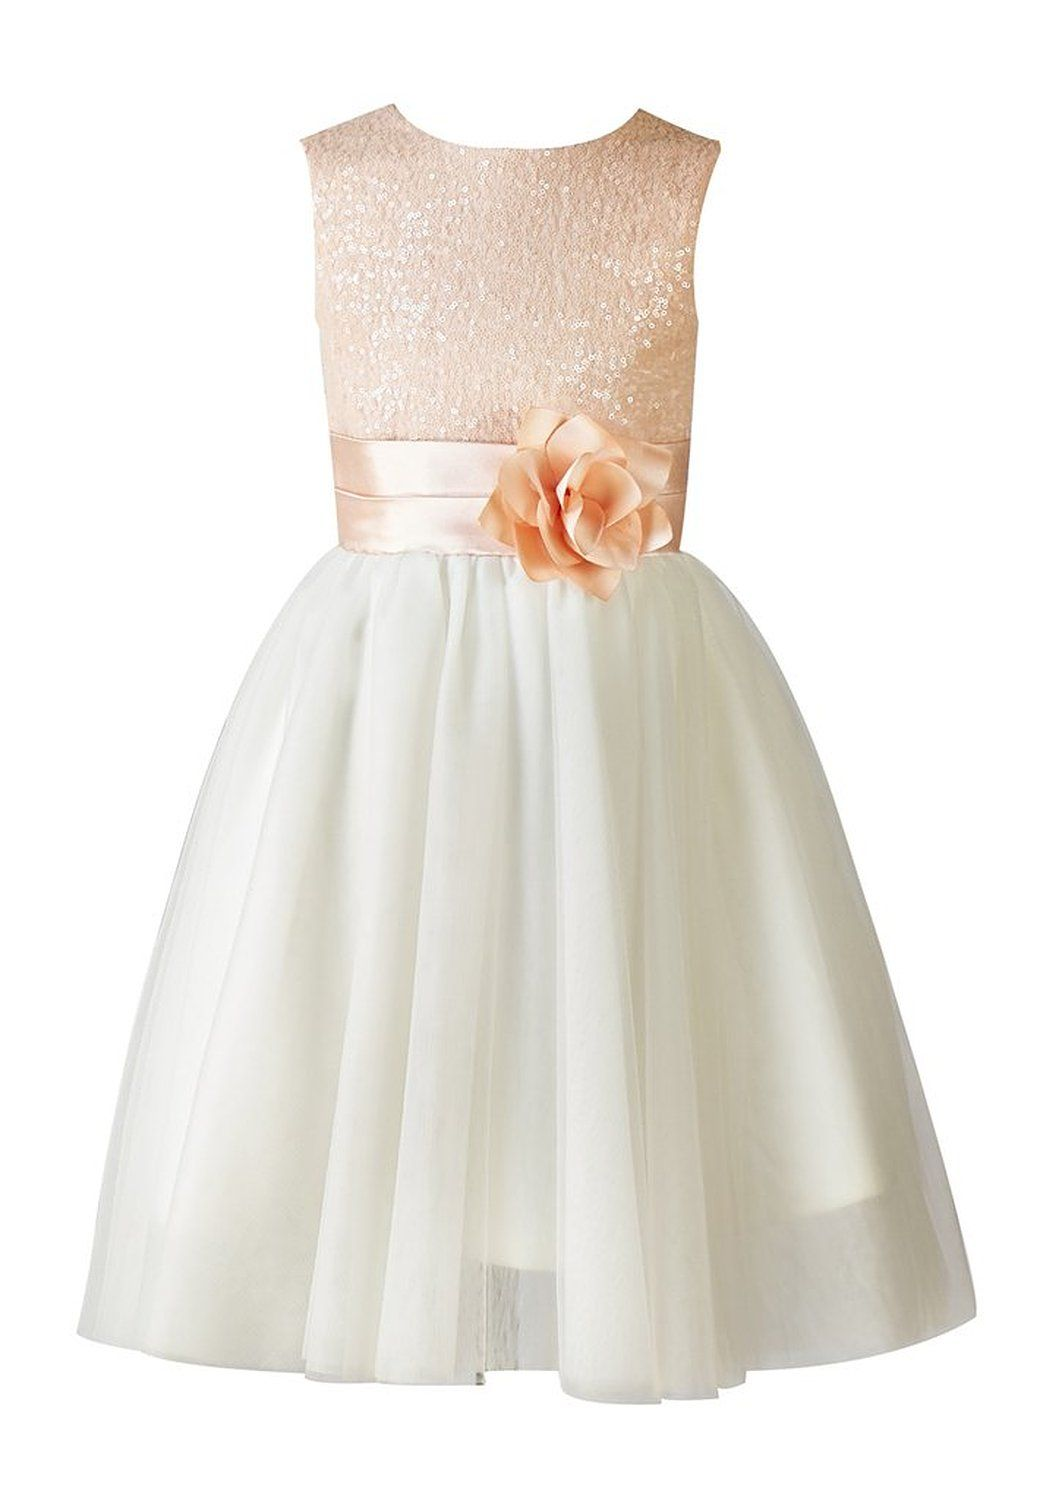 262deaa847a Amazon.com  Thstylee Girl s Sequin Tulle Flower Girl Dress Junior  Bridesmaid Dress  Clothing